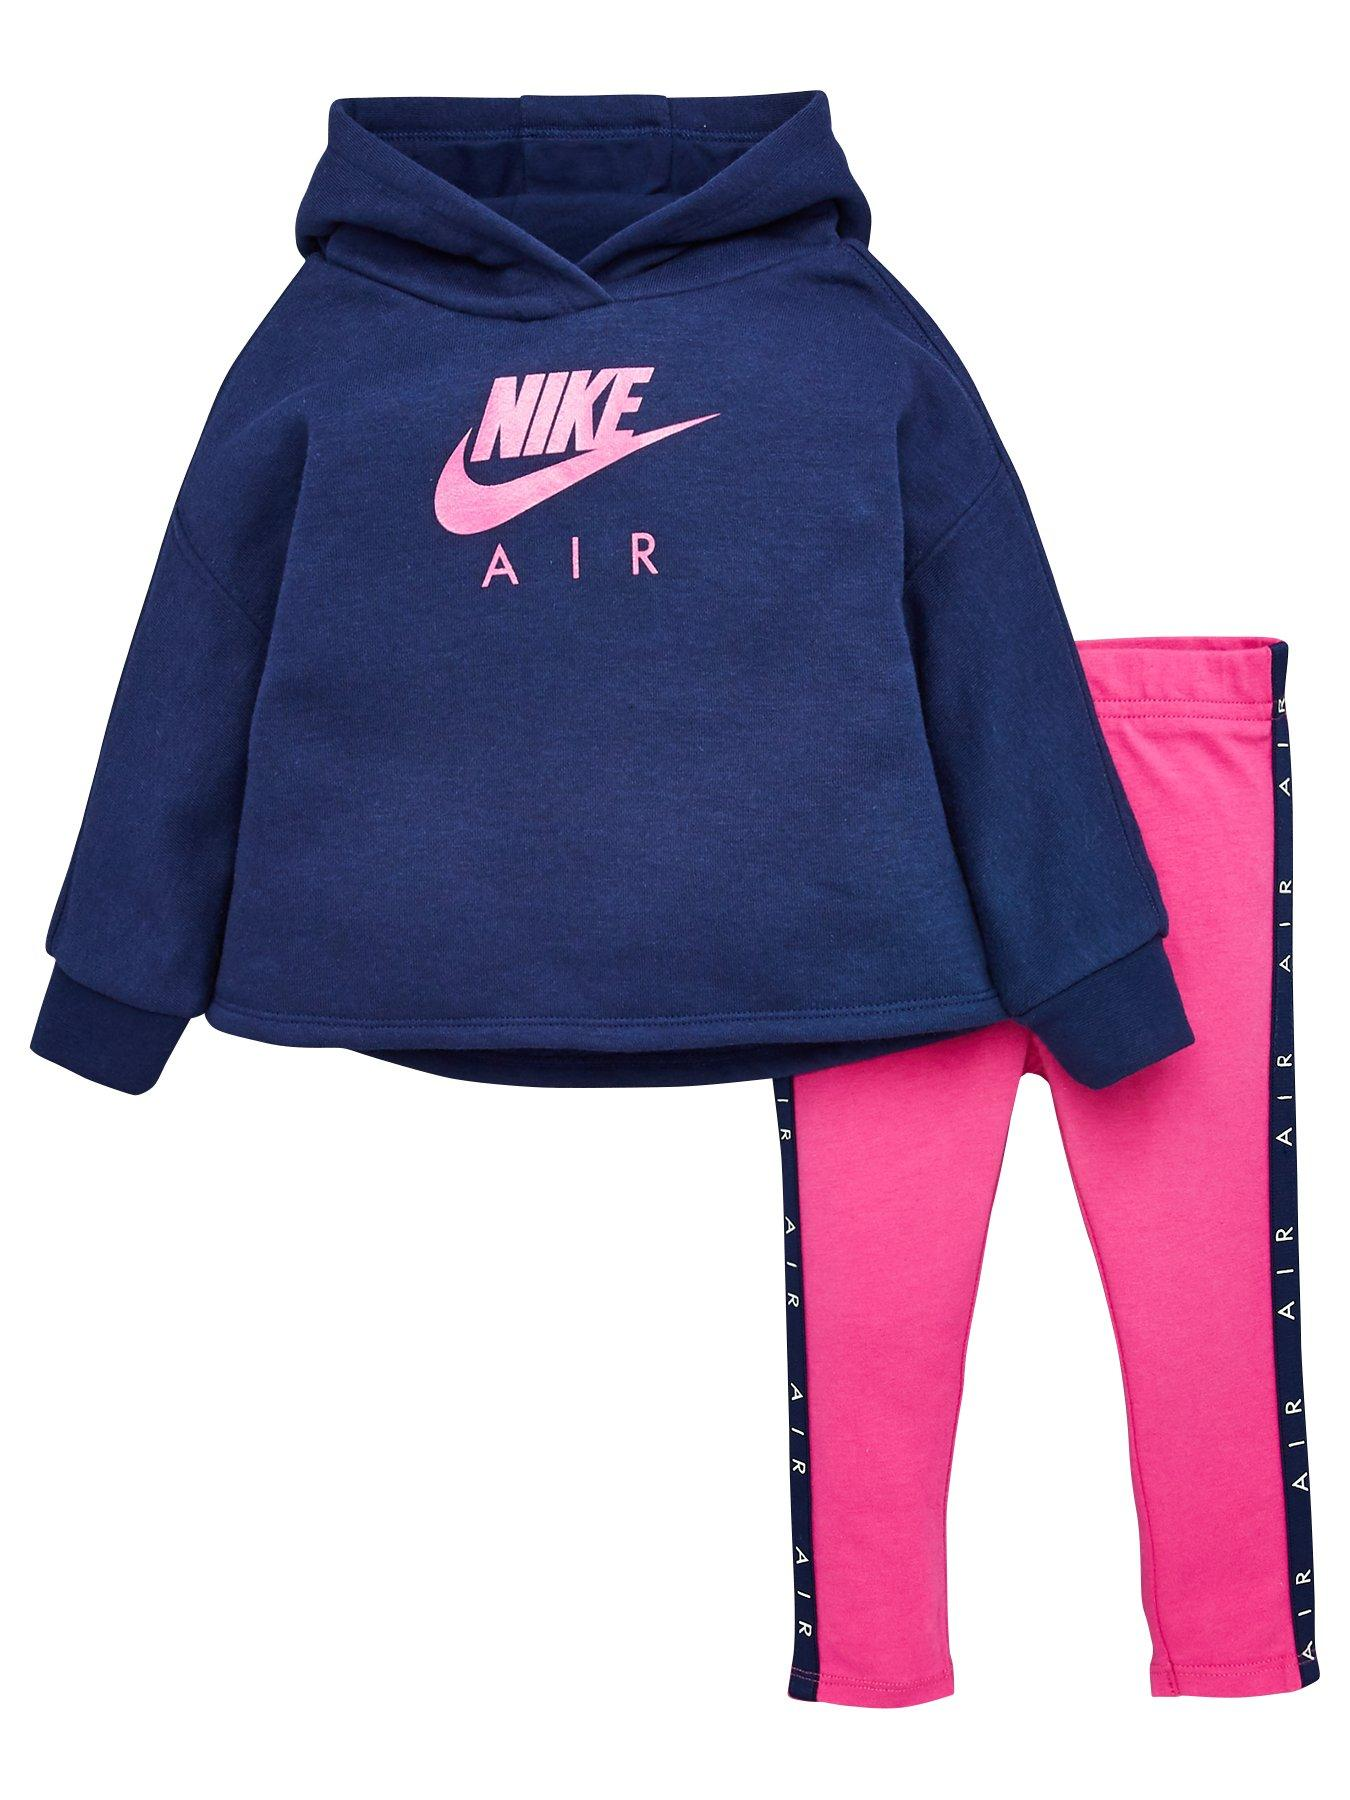 Nike Infant Therma Full Zip Tracksuit Children Hooded Jogging Suit Pink Blue